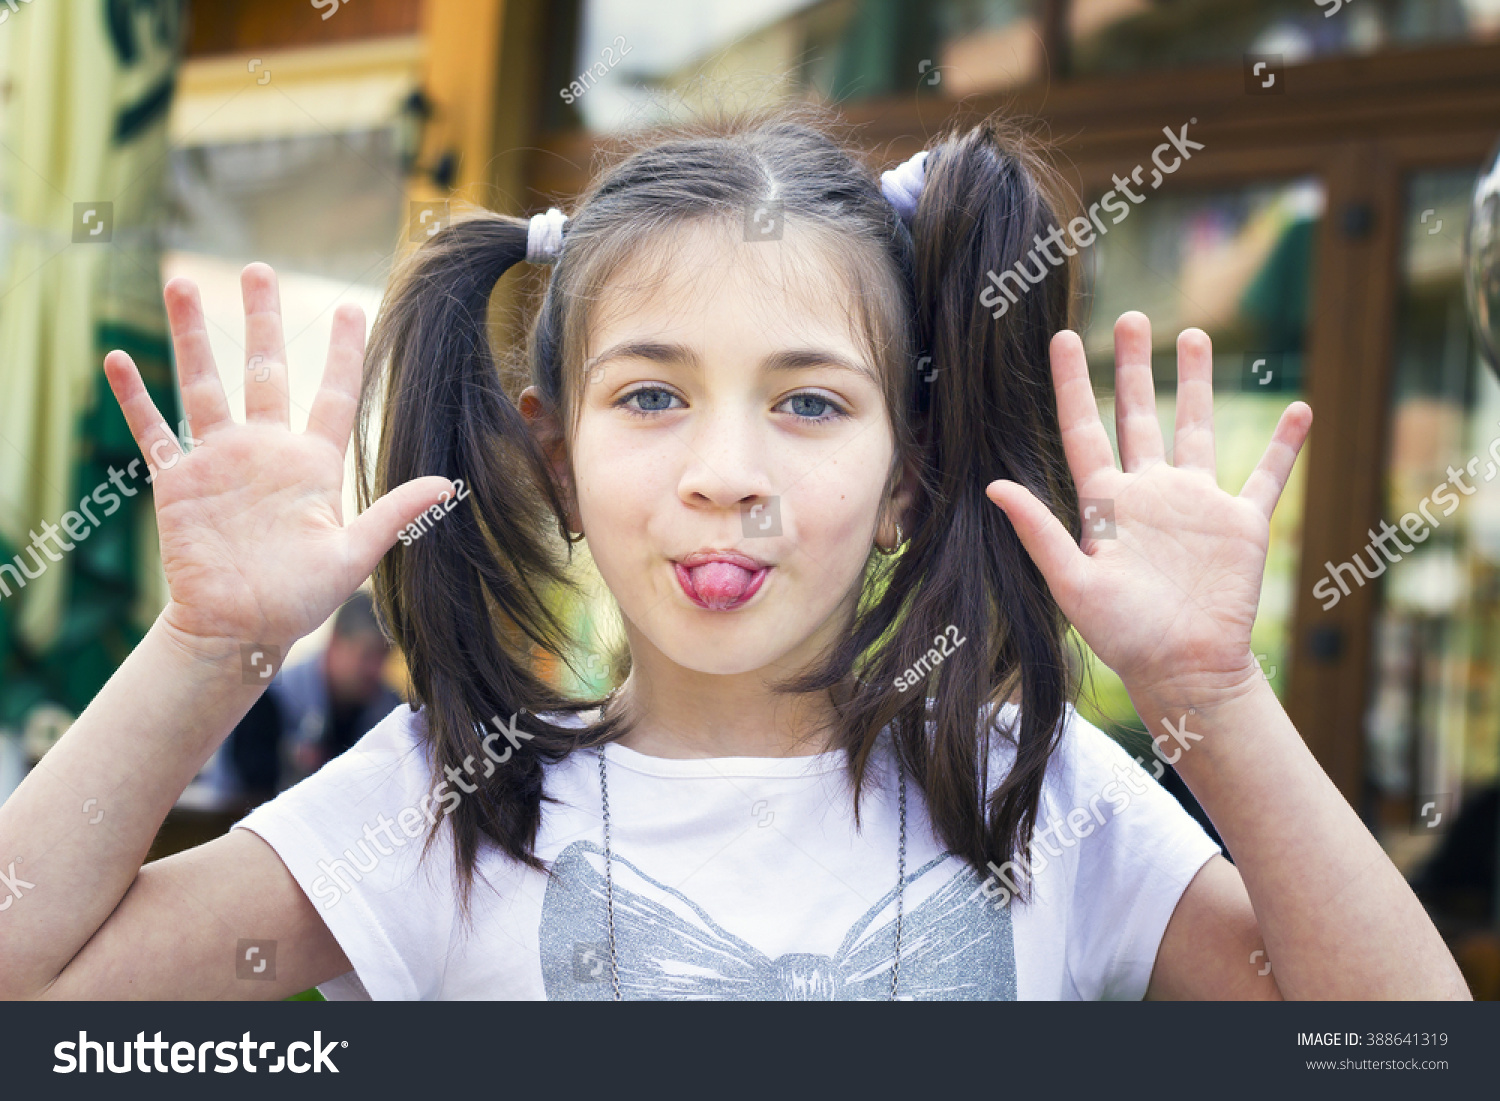 Grimace face clip art stock photo woman pulls a face in upset - Kid Girl Making A Face And Showing His Tongue